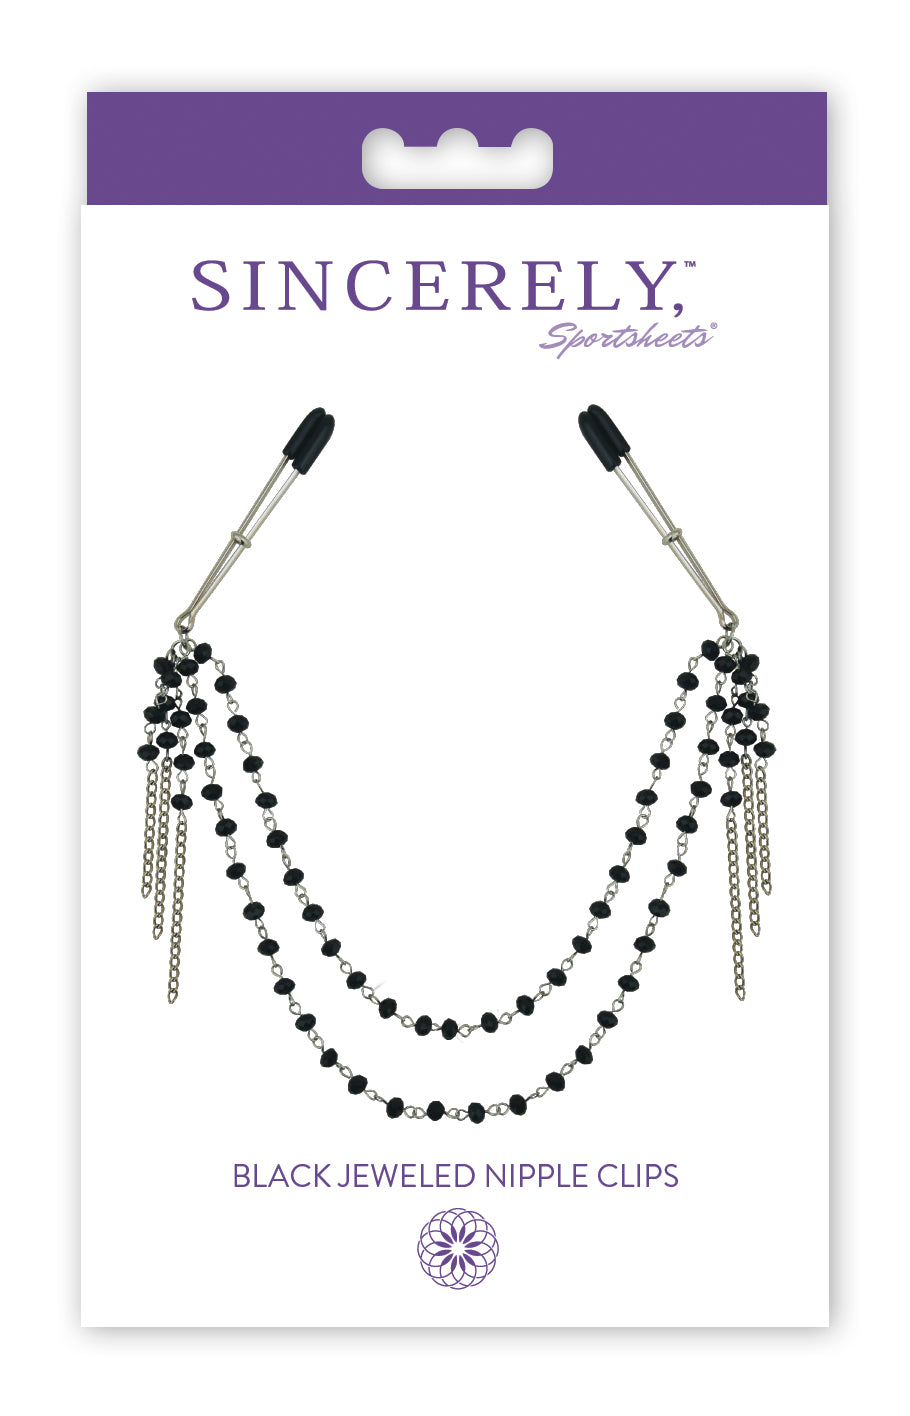 Sincerely Black Jeweled Nipple Clips